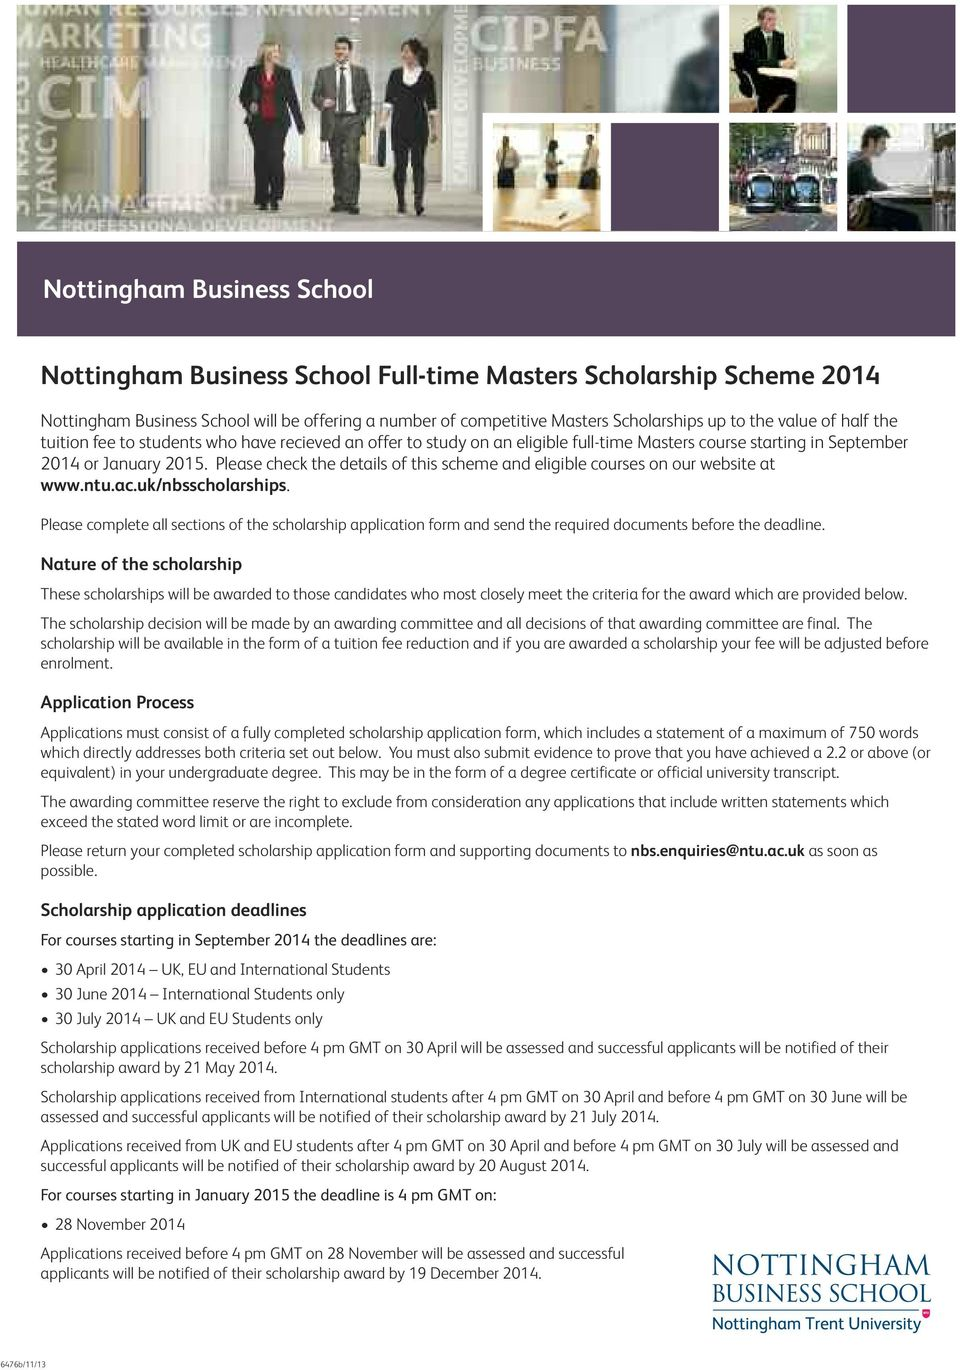 Please check the details of this scheme and eligible courses on our website at www.ntu.ac.uk/nbsscholarships.